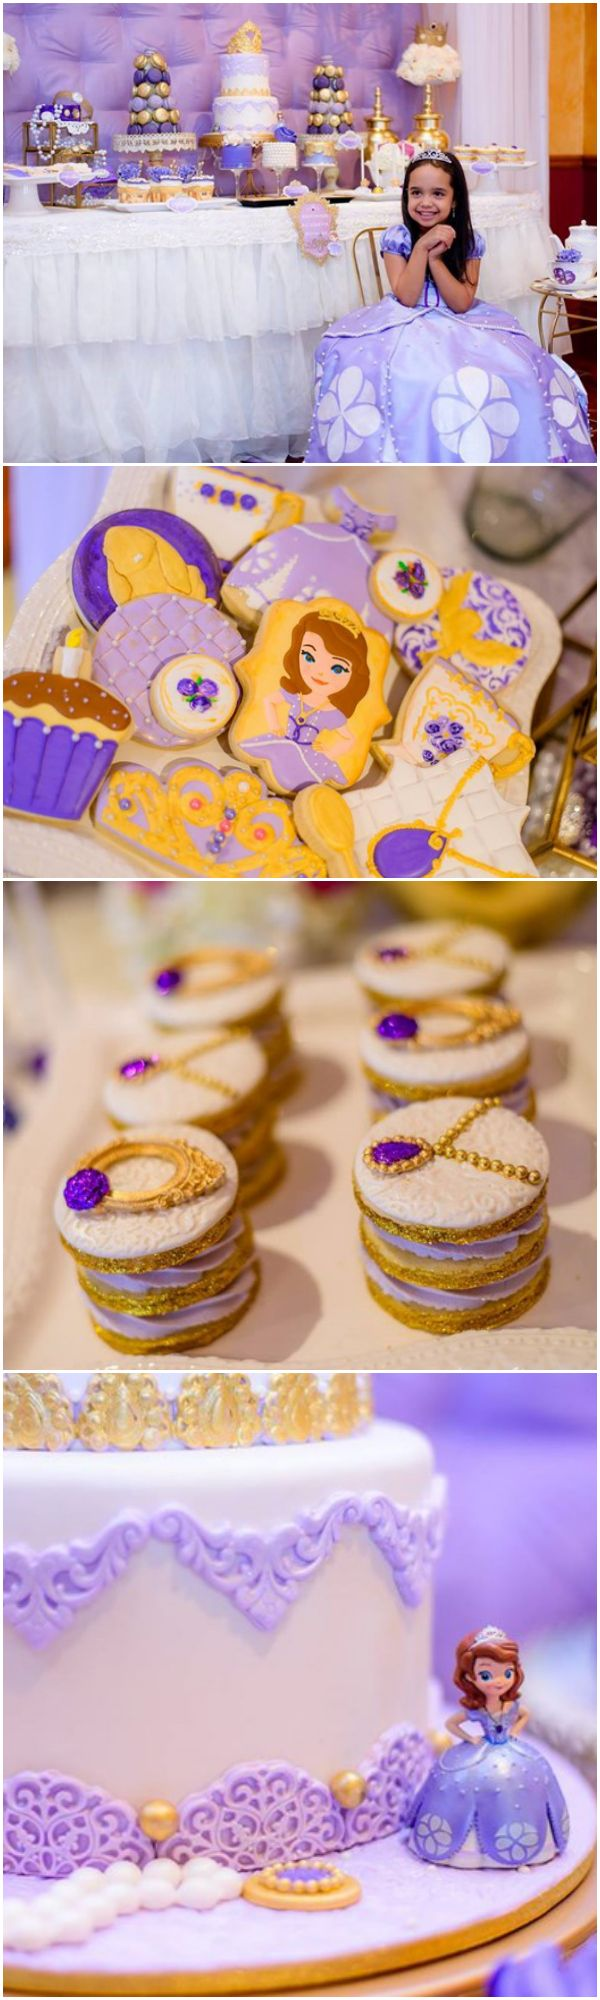 Sofia the First Royal Tea Party Ideas